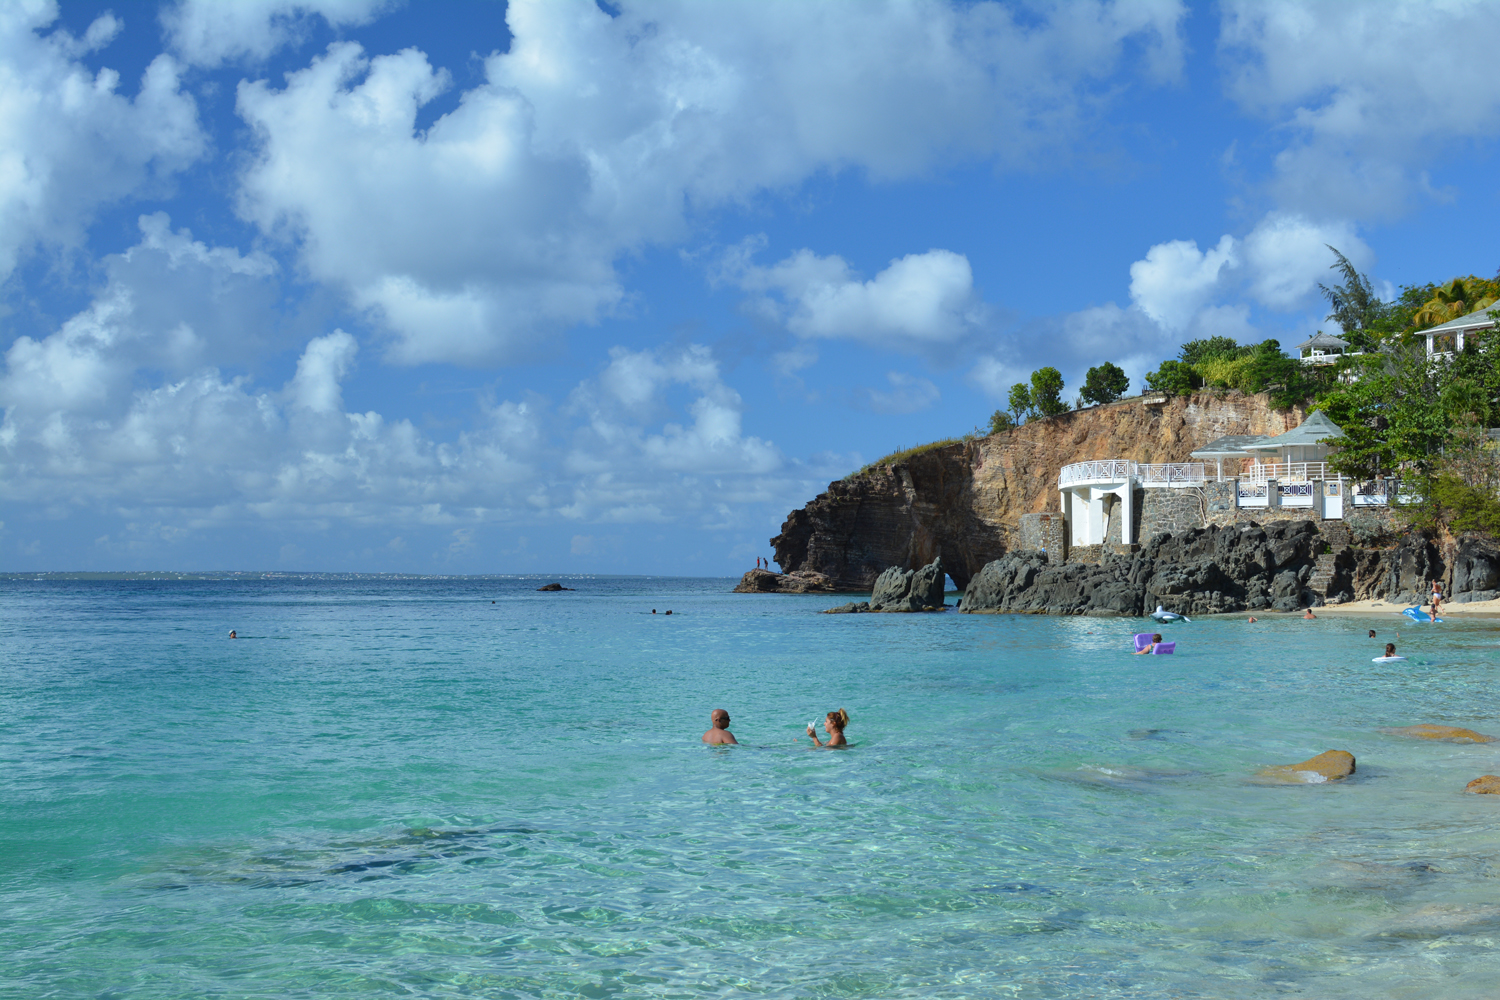 Dreams in HD Travel The Beaches of St Maarten